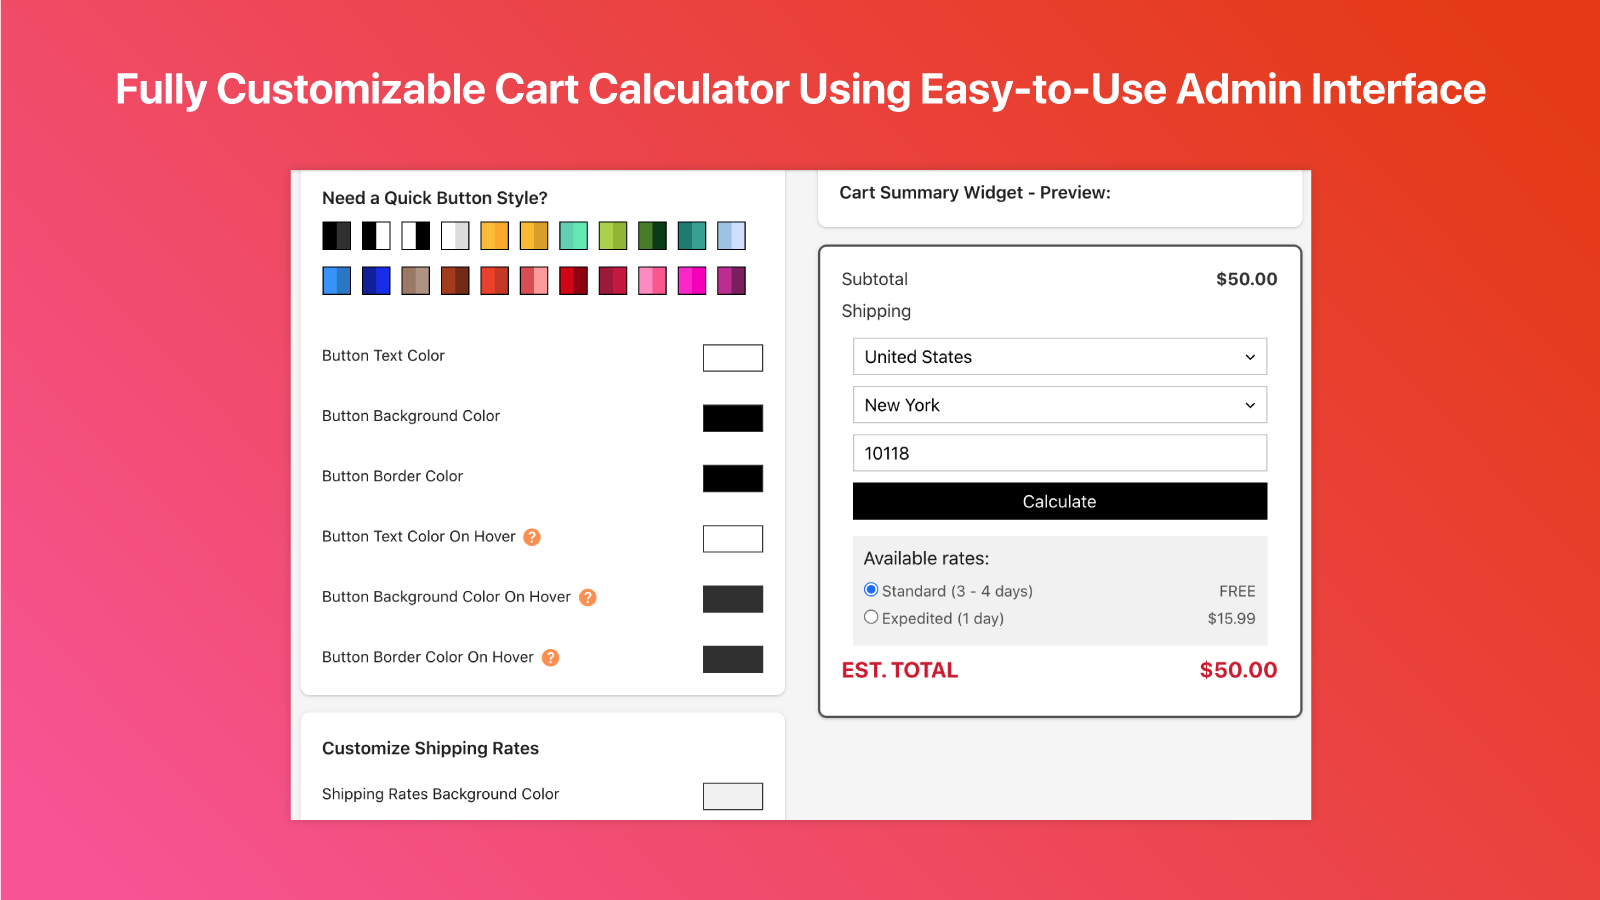 Customizable Cart Shipping Calculator with Easy-to-Use Admin